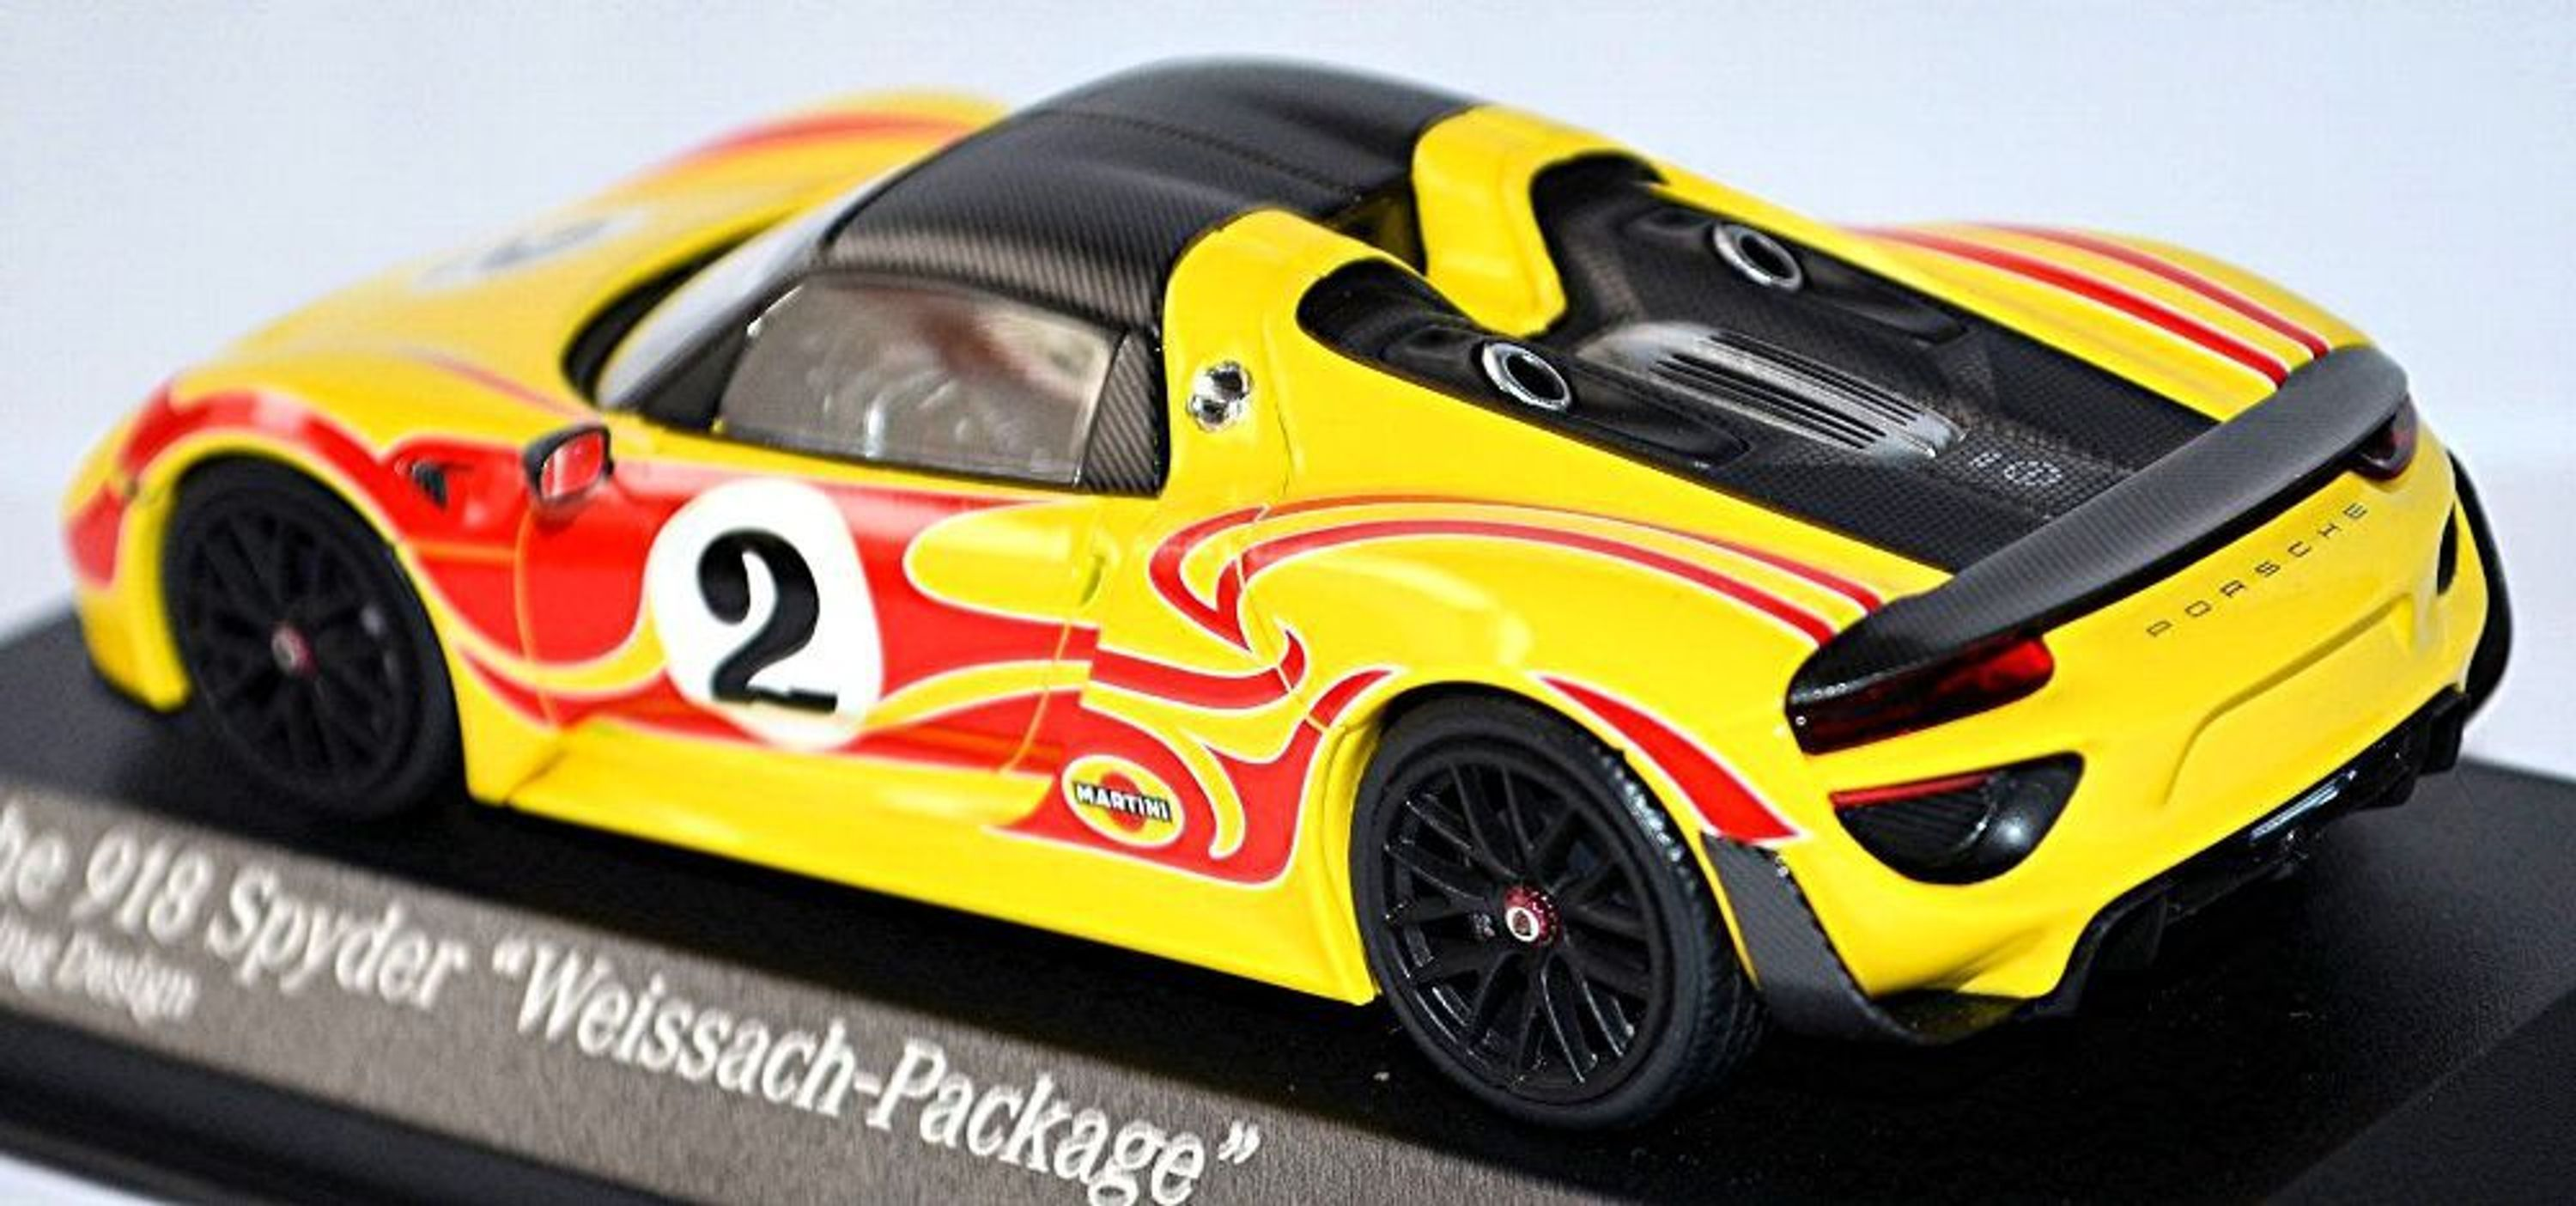 Minichamps 1:43 PORSCHE 918 SPYDER /'Weissach package W//KYALAMI RACING design